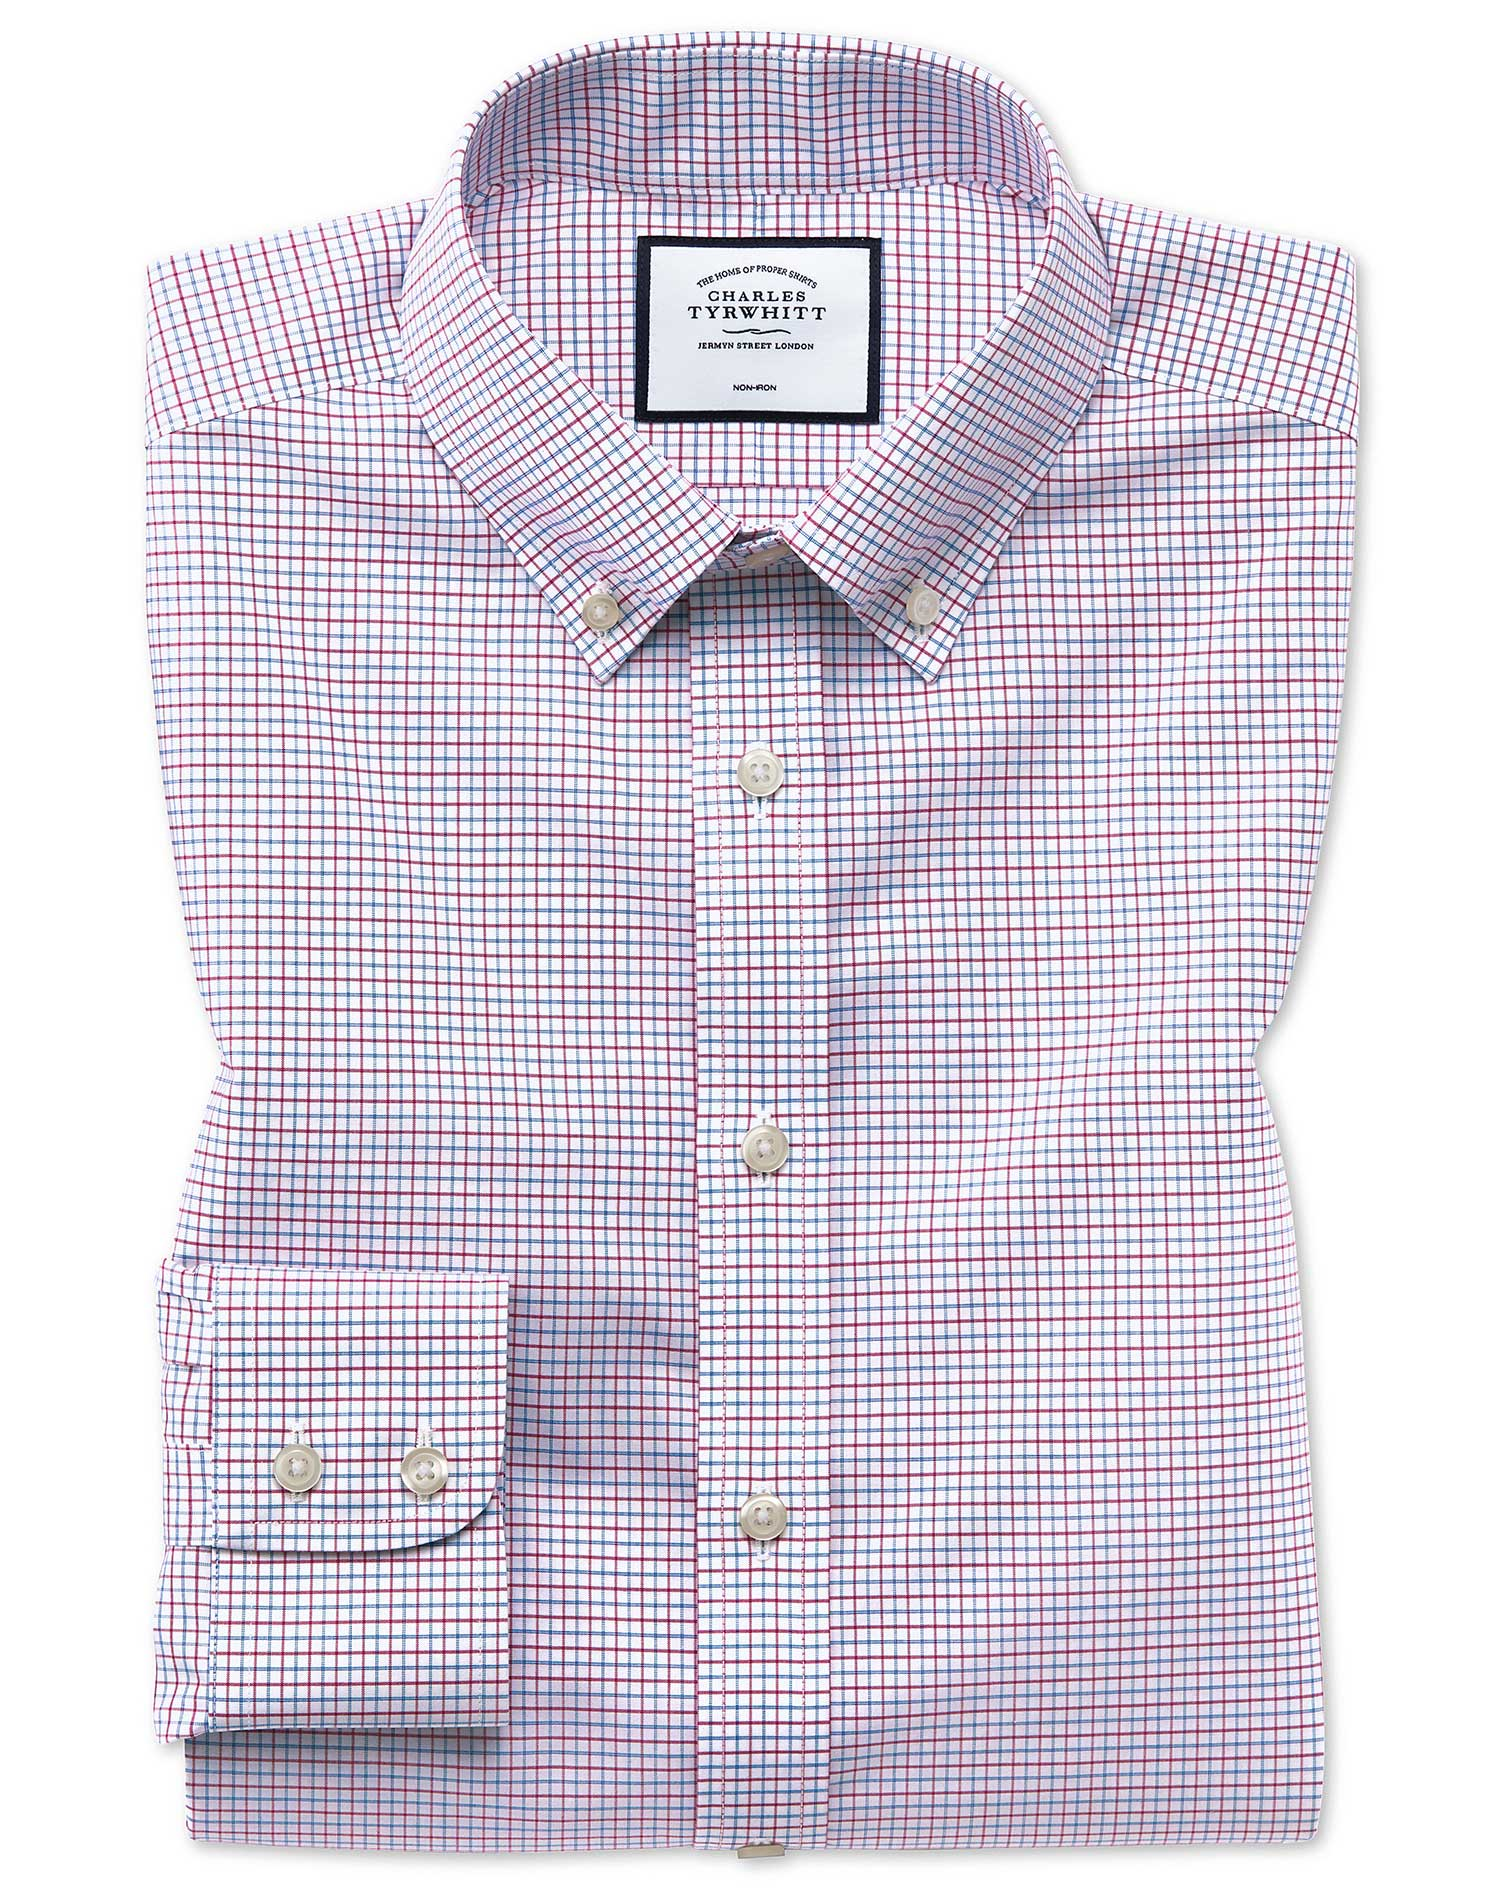 Classic Fit Non-Iron Button-Down Red and Blue Check Cotton Formal Shirt Single Cuff Size 17/37 by Ch